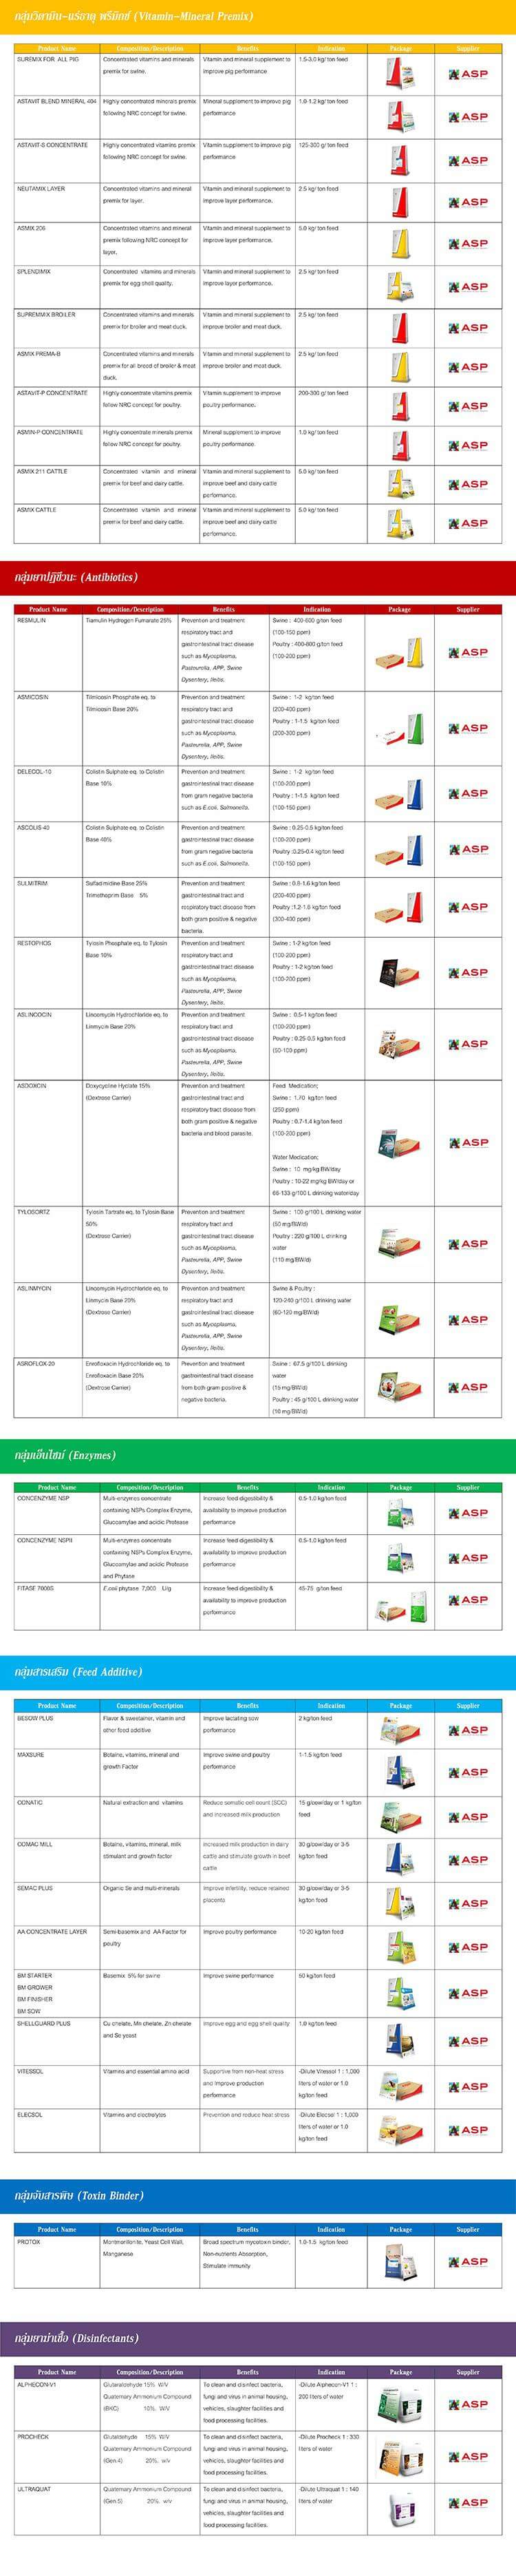 Vetproducts (Cambodia) Co , Ltd - Vet Products Group